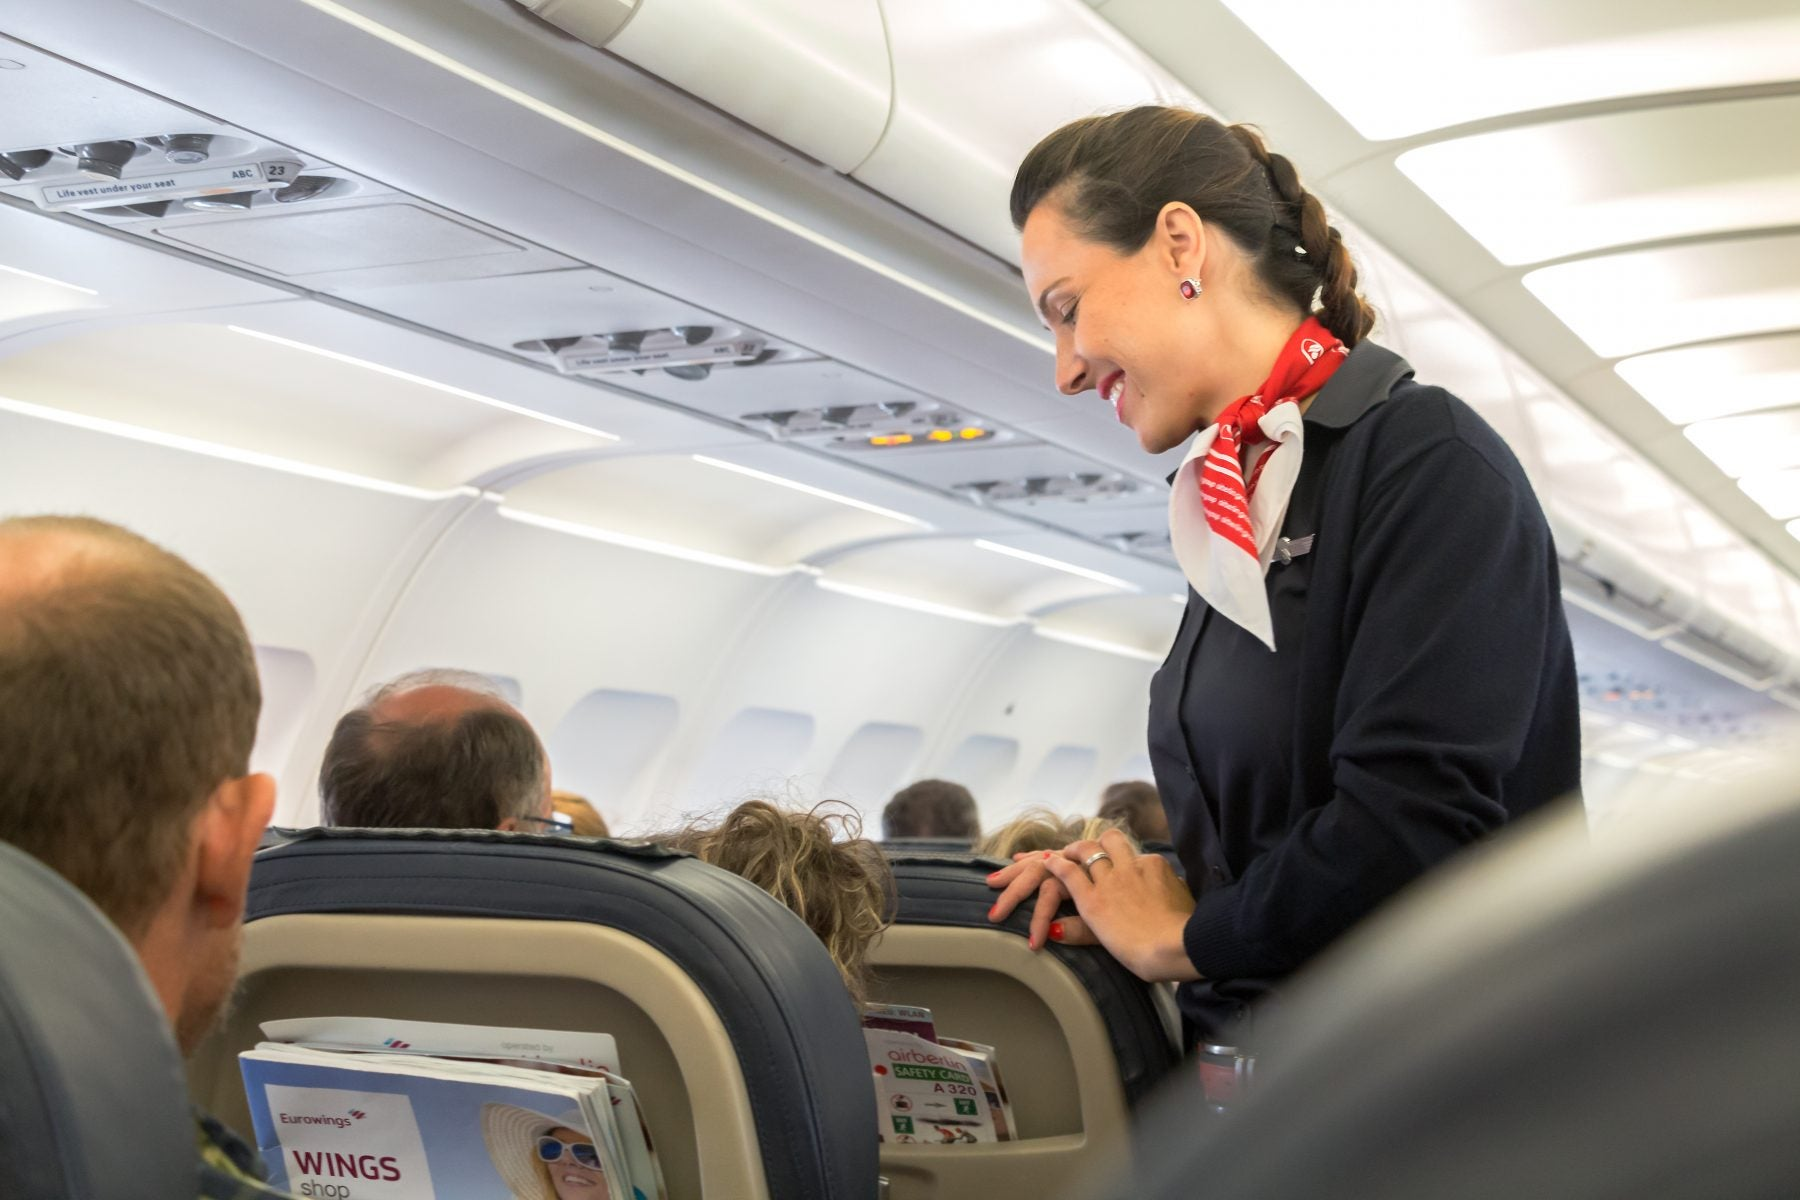 Friendly flight attendant re-assuring nervous guest